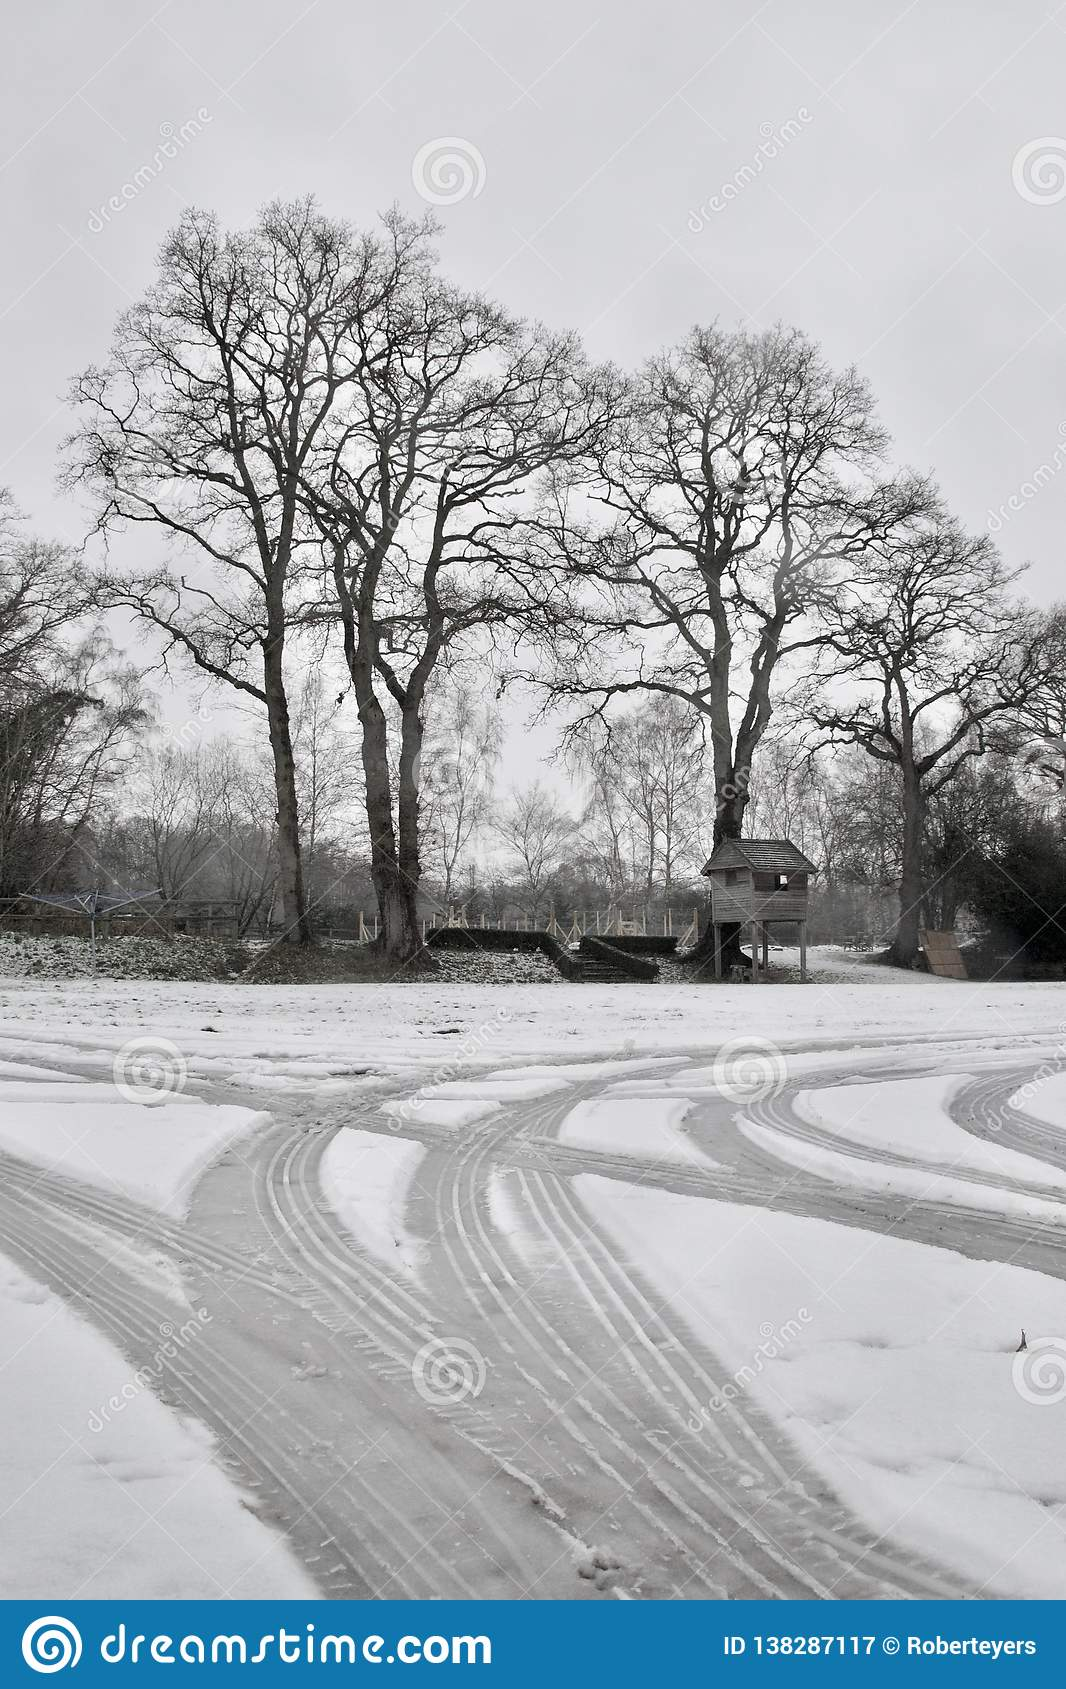 Car tyre tracks in snow on driveway; bare winter trees and garden tree house